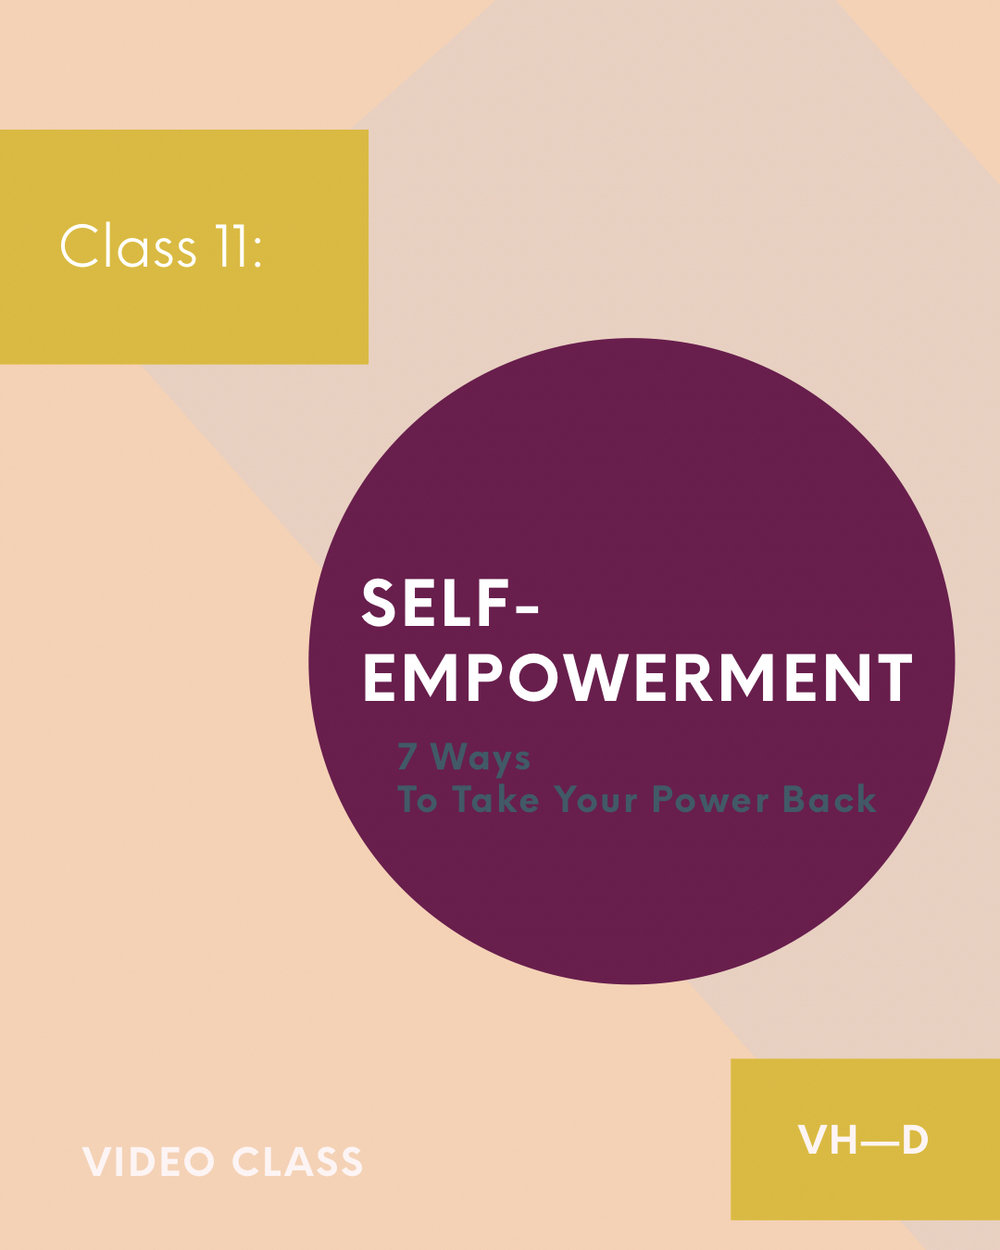 Subject 11: Self-Empowerment - Video classEmpowerment allows you to go higher and beyond where you are now!Are you living an empowered life?Dis-empowerment can cause negative thoughts, fears, doubts, pain, insecurities, circumstances, lower vibrations, and unhealthy subconscious-beliefs, to consume our lives, to keep us from living a fulfilling life, to keep us from reaching out higher potential, and from thriving in life; if we allow them to.In class 11, we'll cover 7 essentials ways to put Self-Empowerment into practice and full-effect.Let's thrive in, and through life!